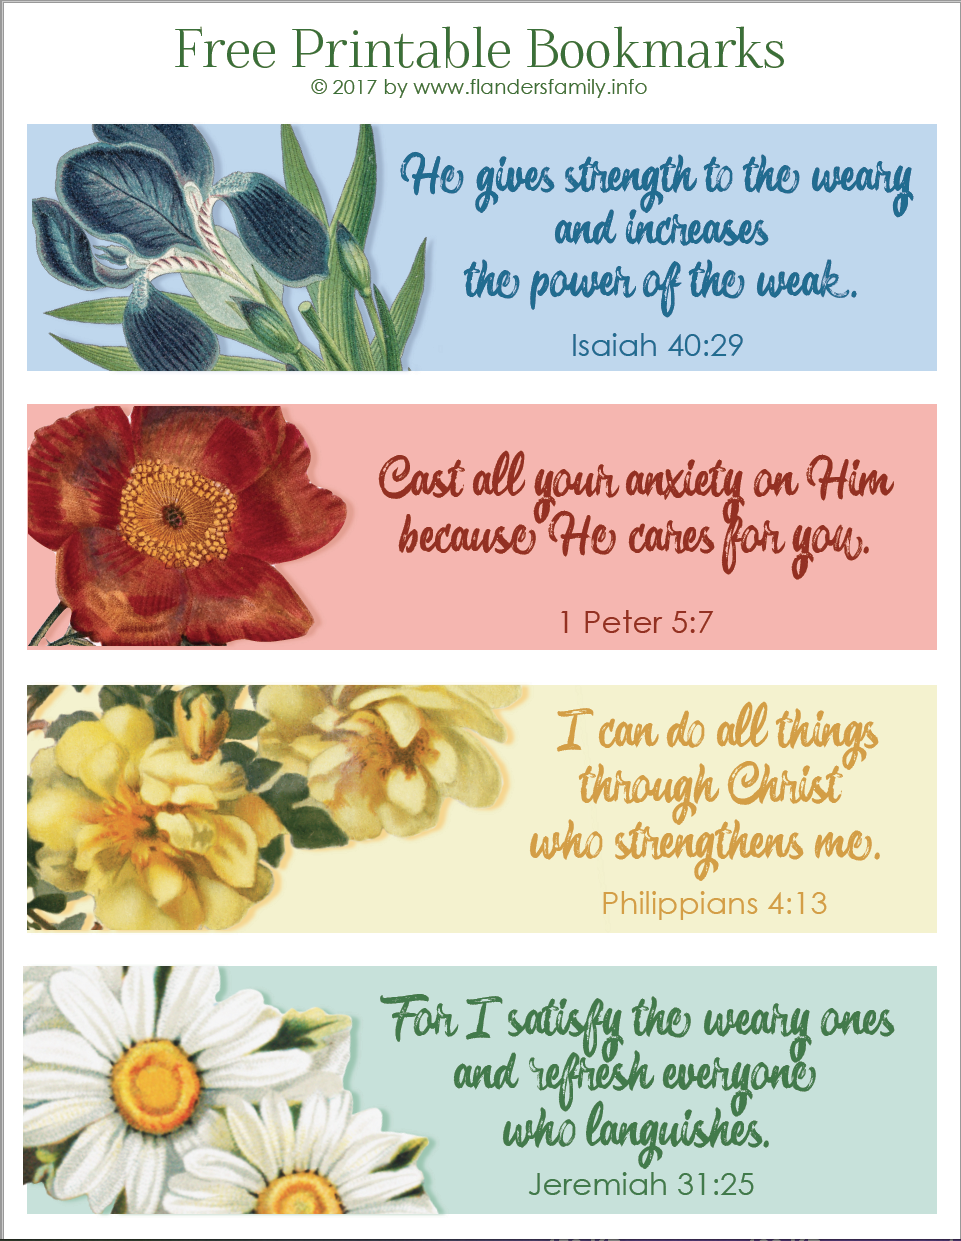 photograph about Free Printable Scripture Verses called Extremely Printable Scripture Bookmarks - Flanders Family members Homelife